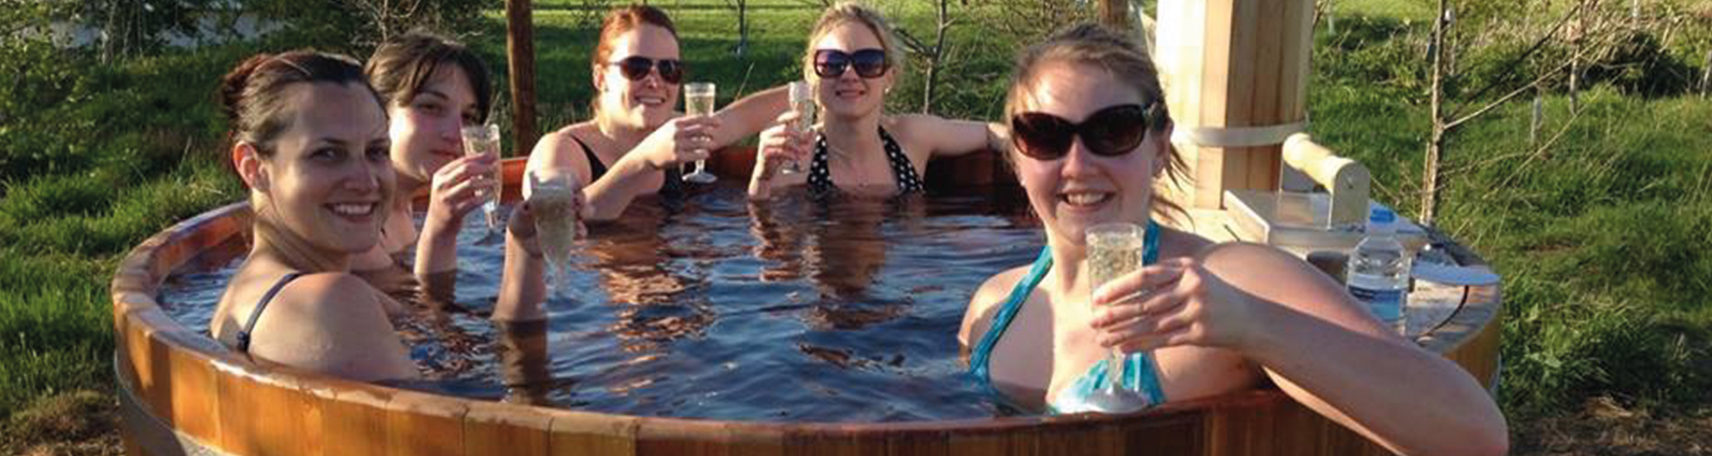 Ladies in a hot tub drinking Champagne at their Hen Camp